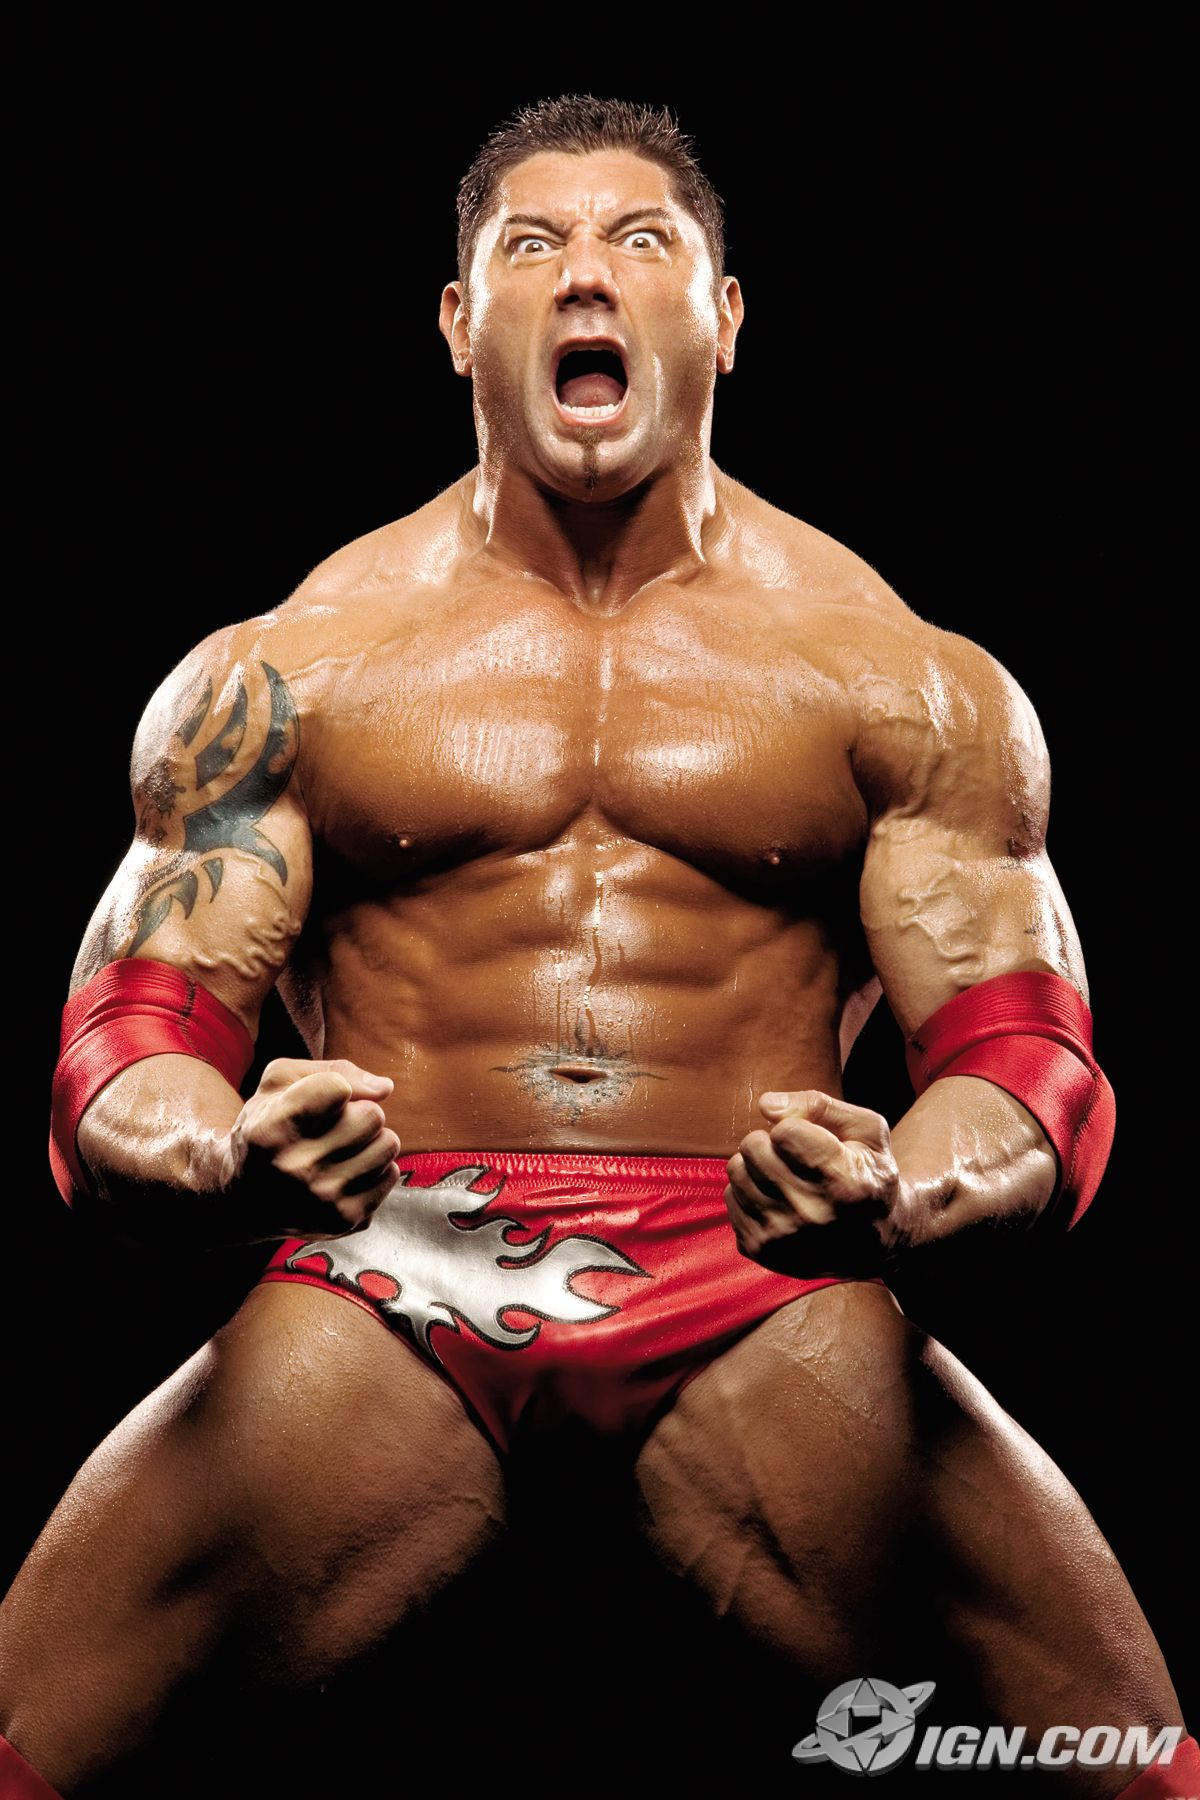 Could we bring Batista back to WWE